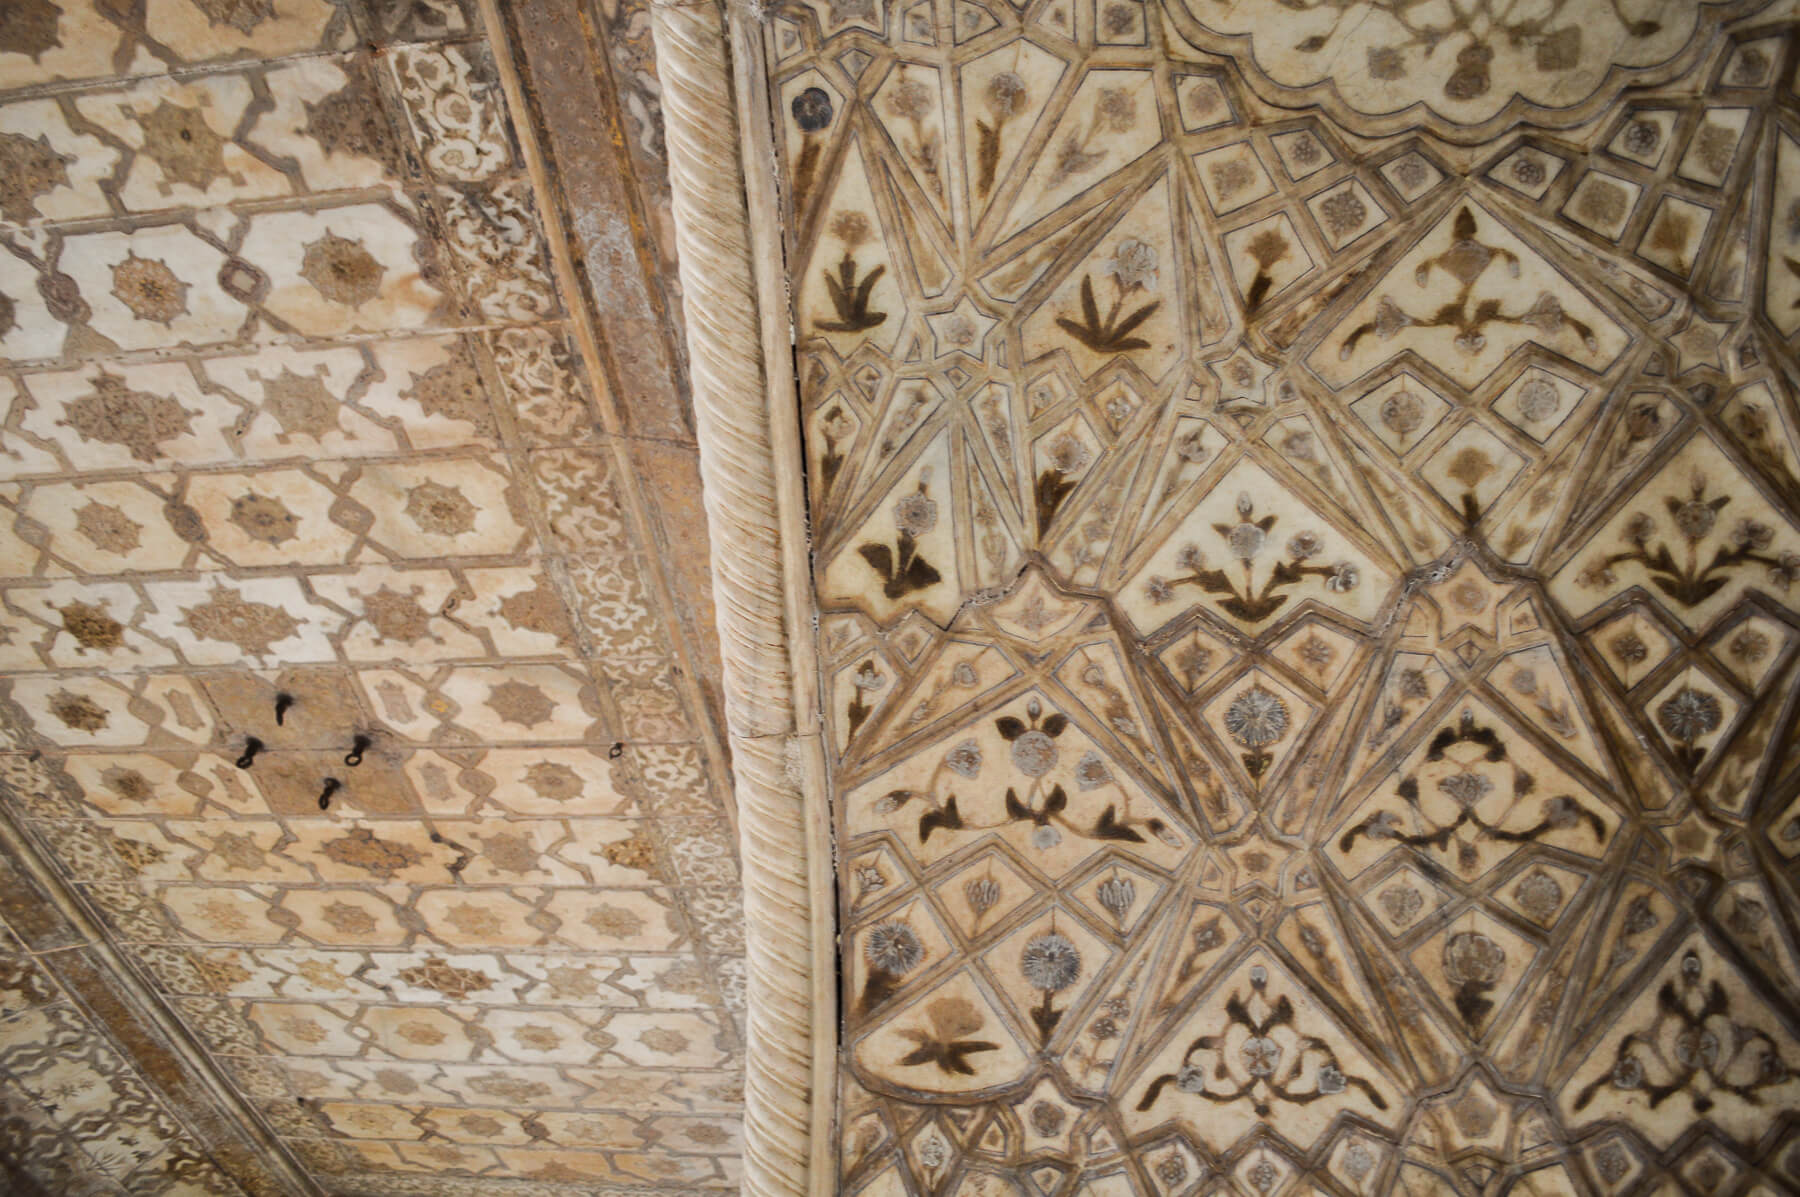 Marble tiled pattern on the ceiling